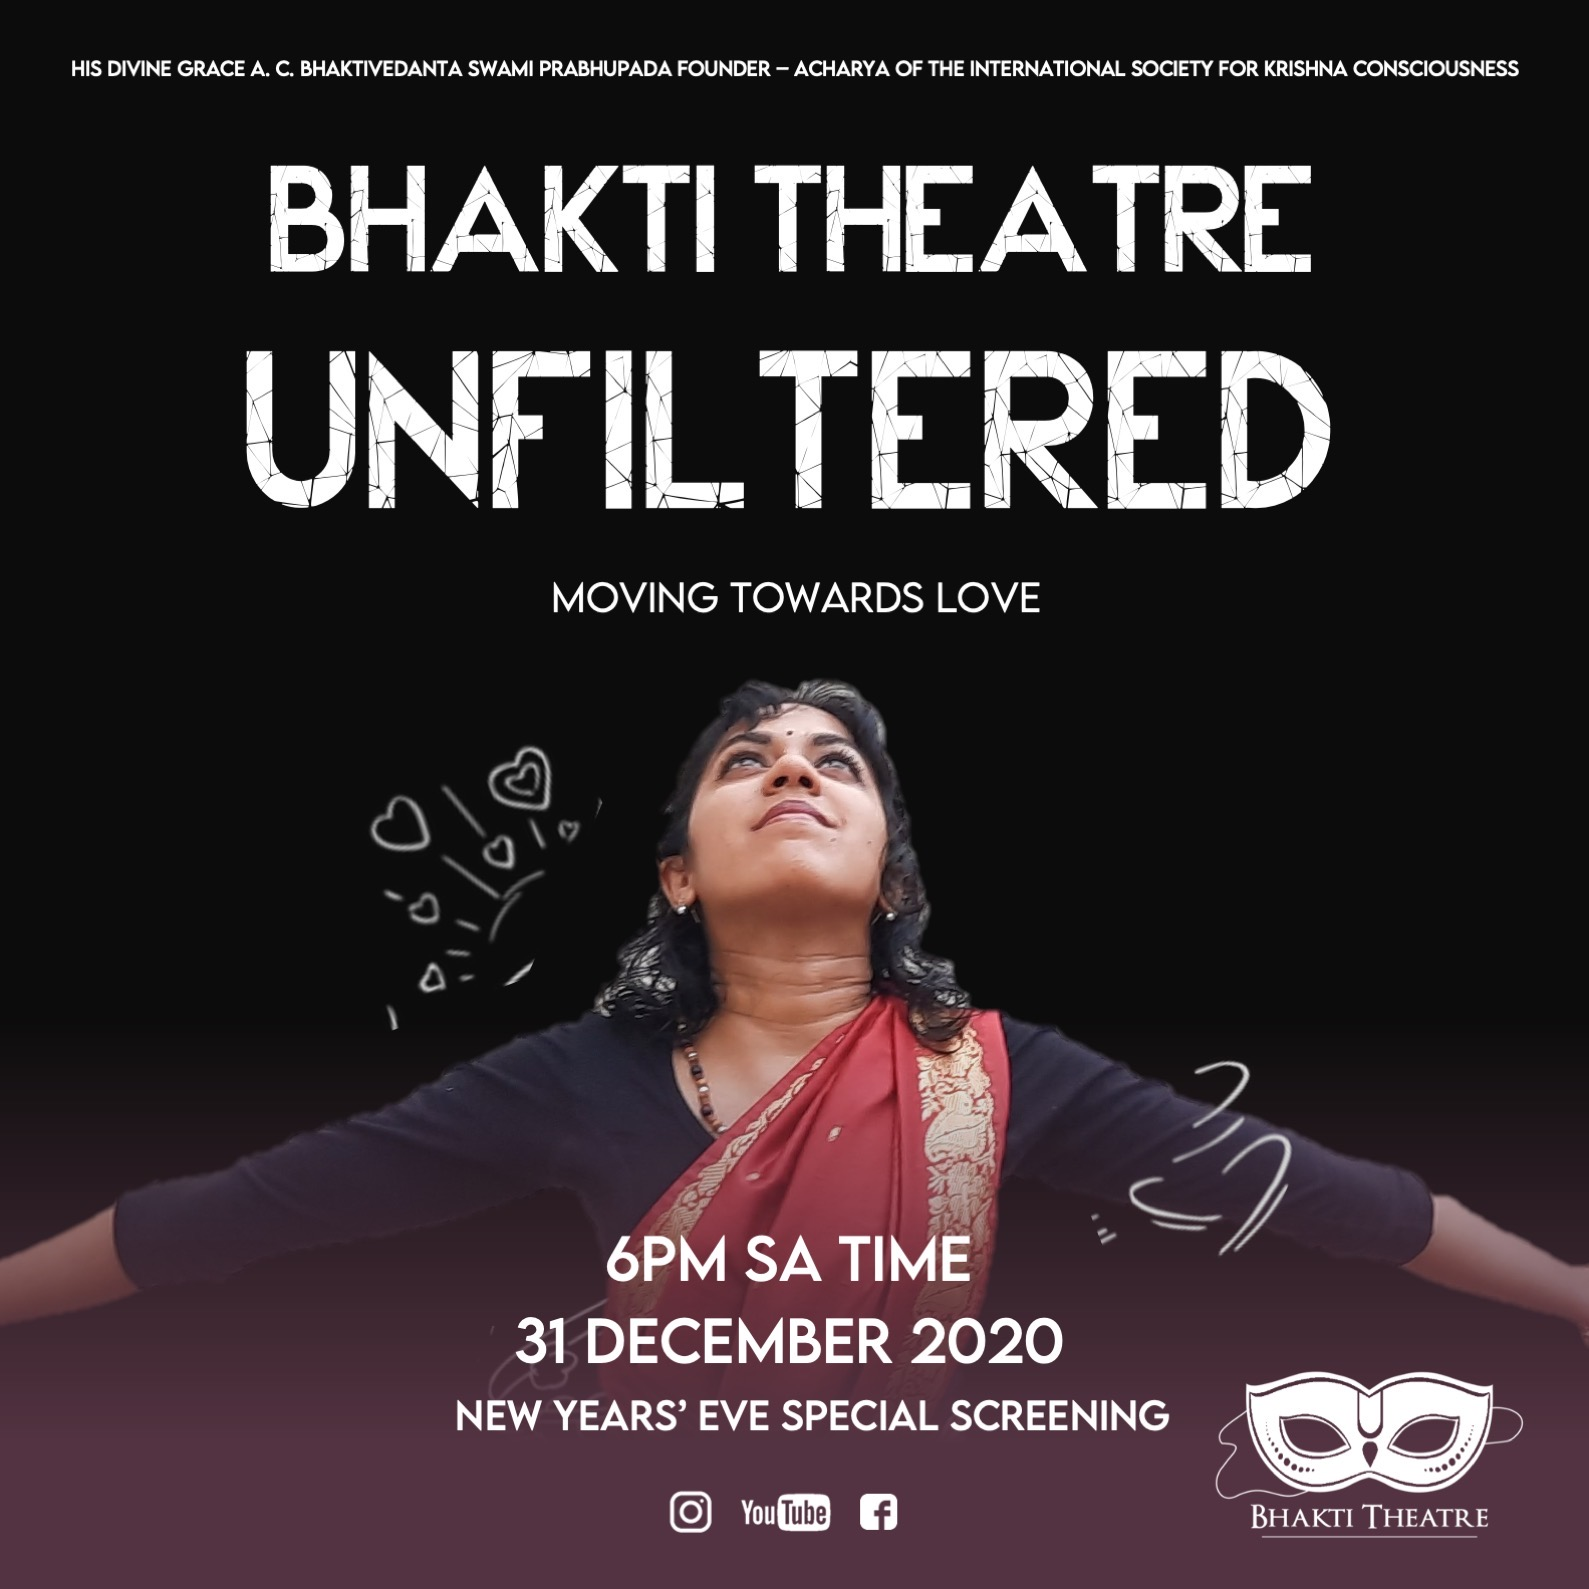 Bhakti Theatre's Latest Production